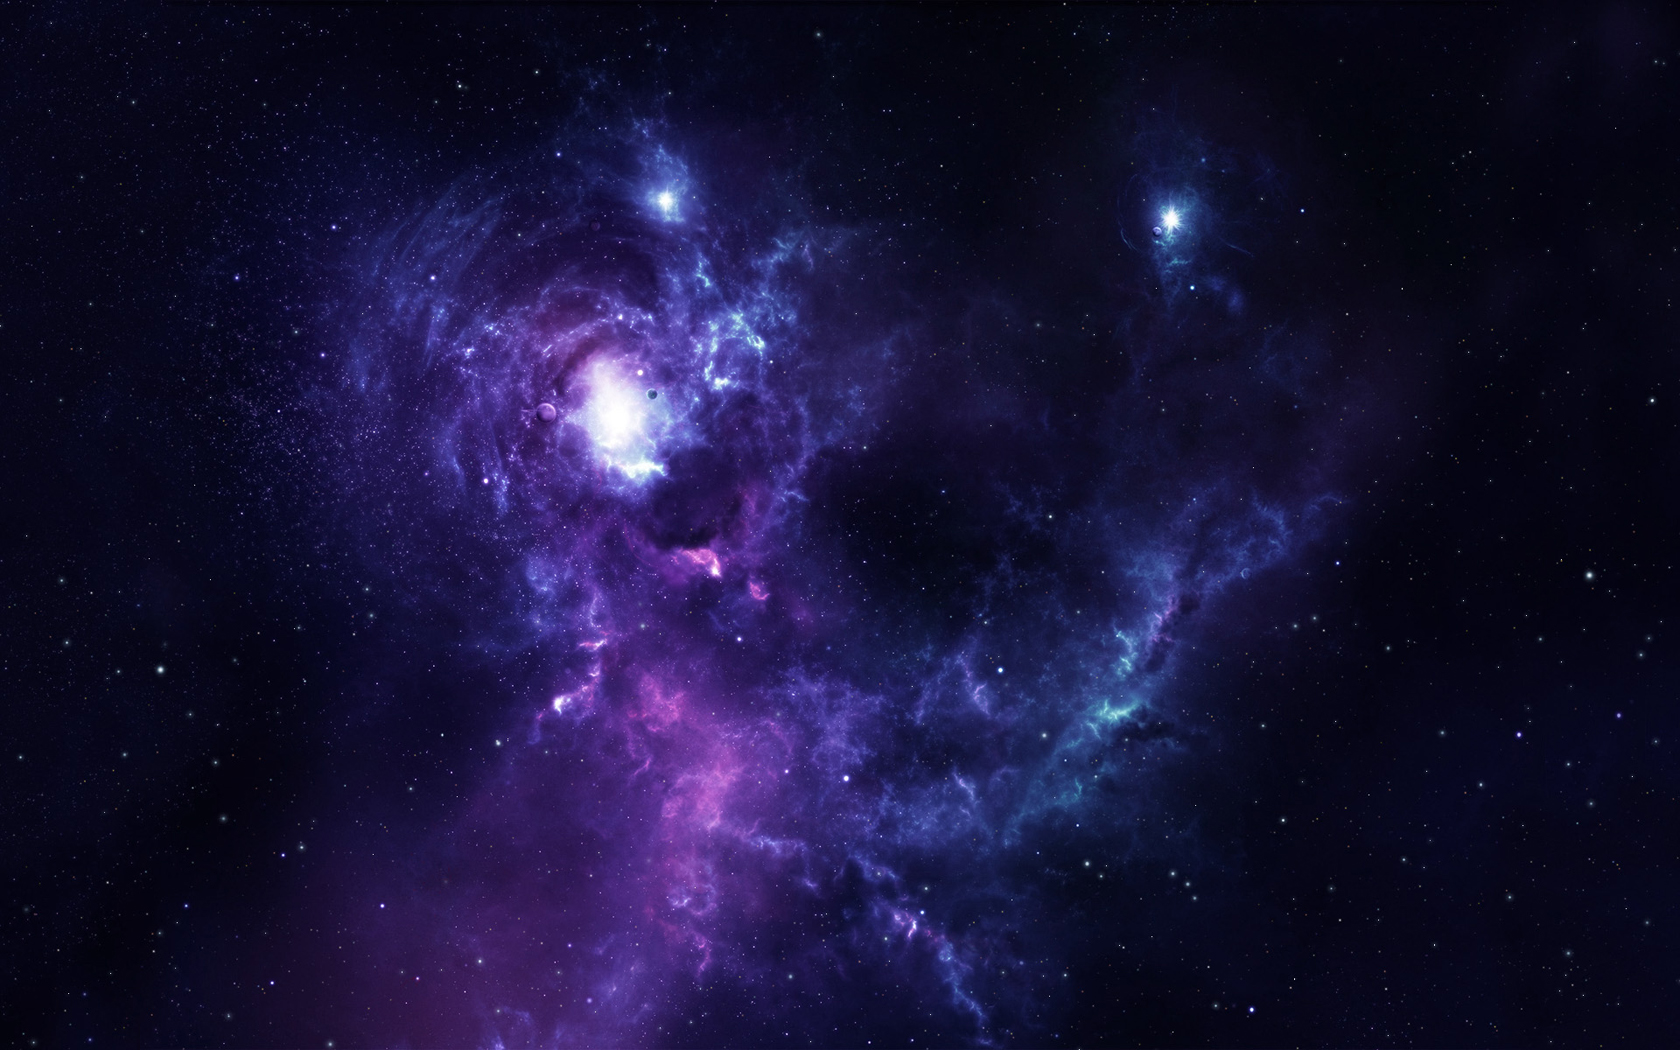 Wallpapers Hd Iphone 5 Purple Space Wallpapers 36 Wallpapers Adorable Wallpapers